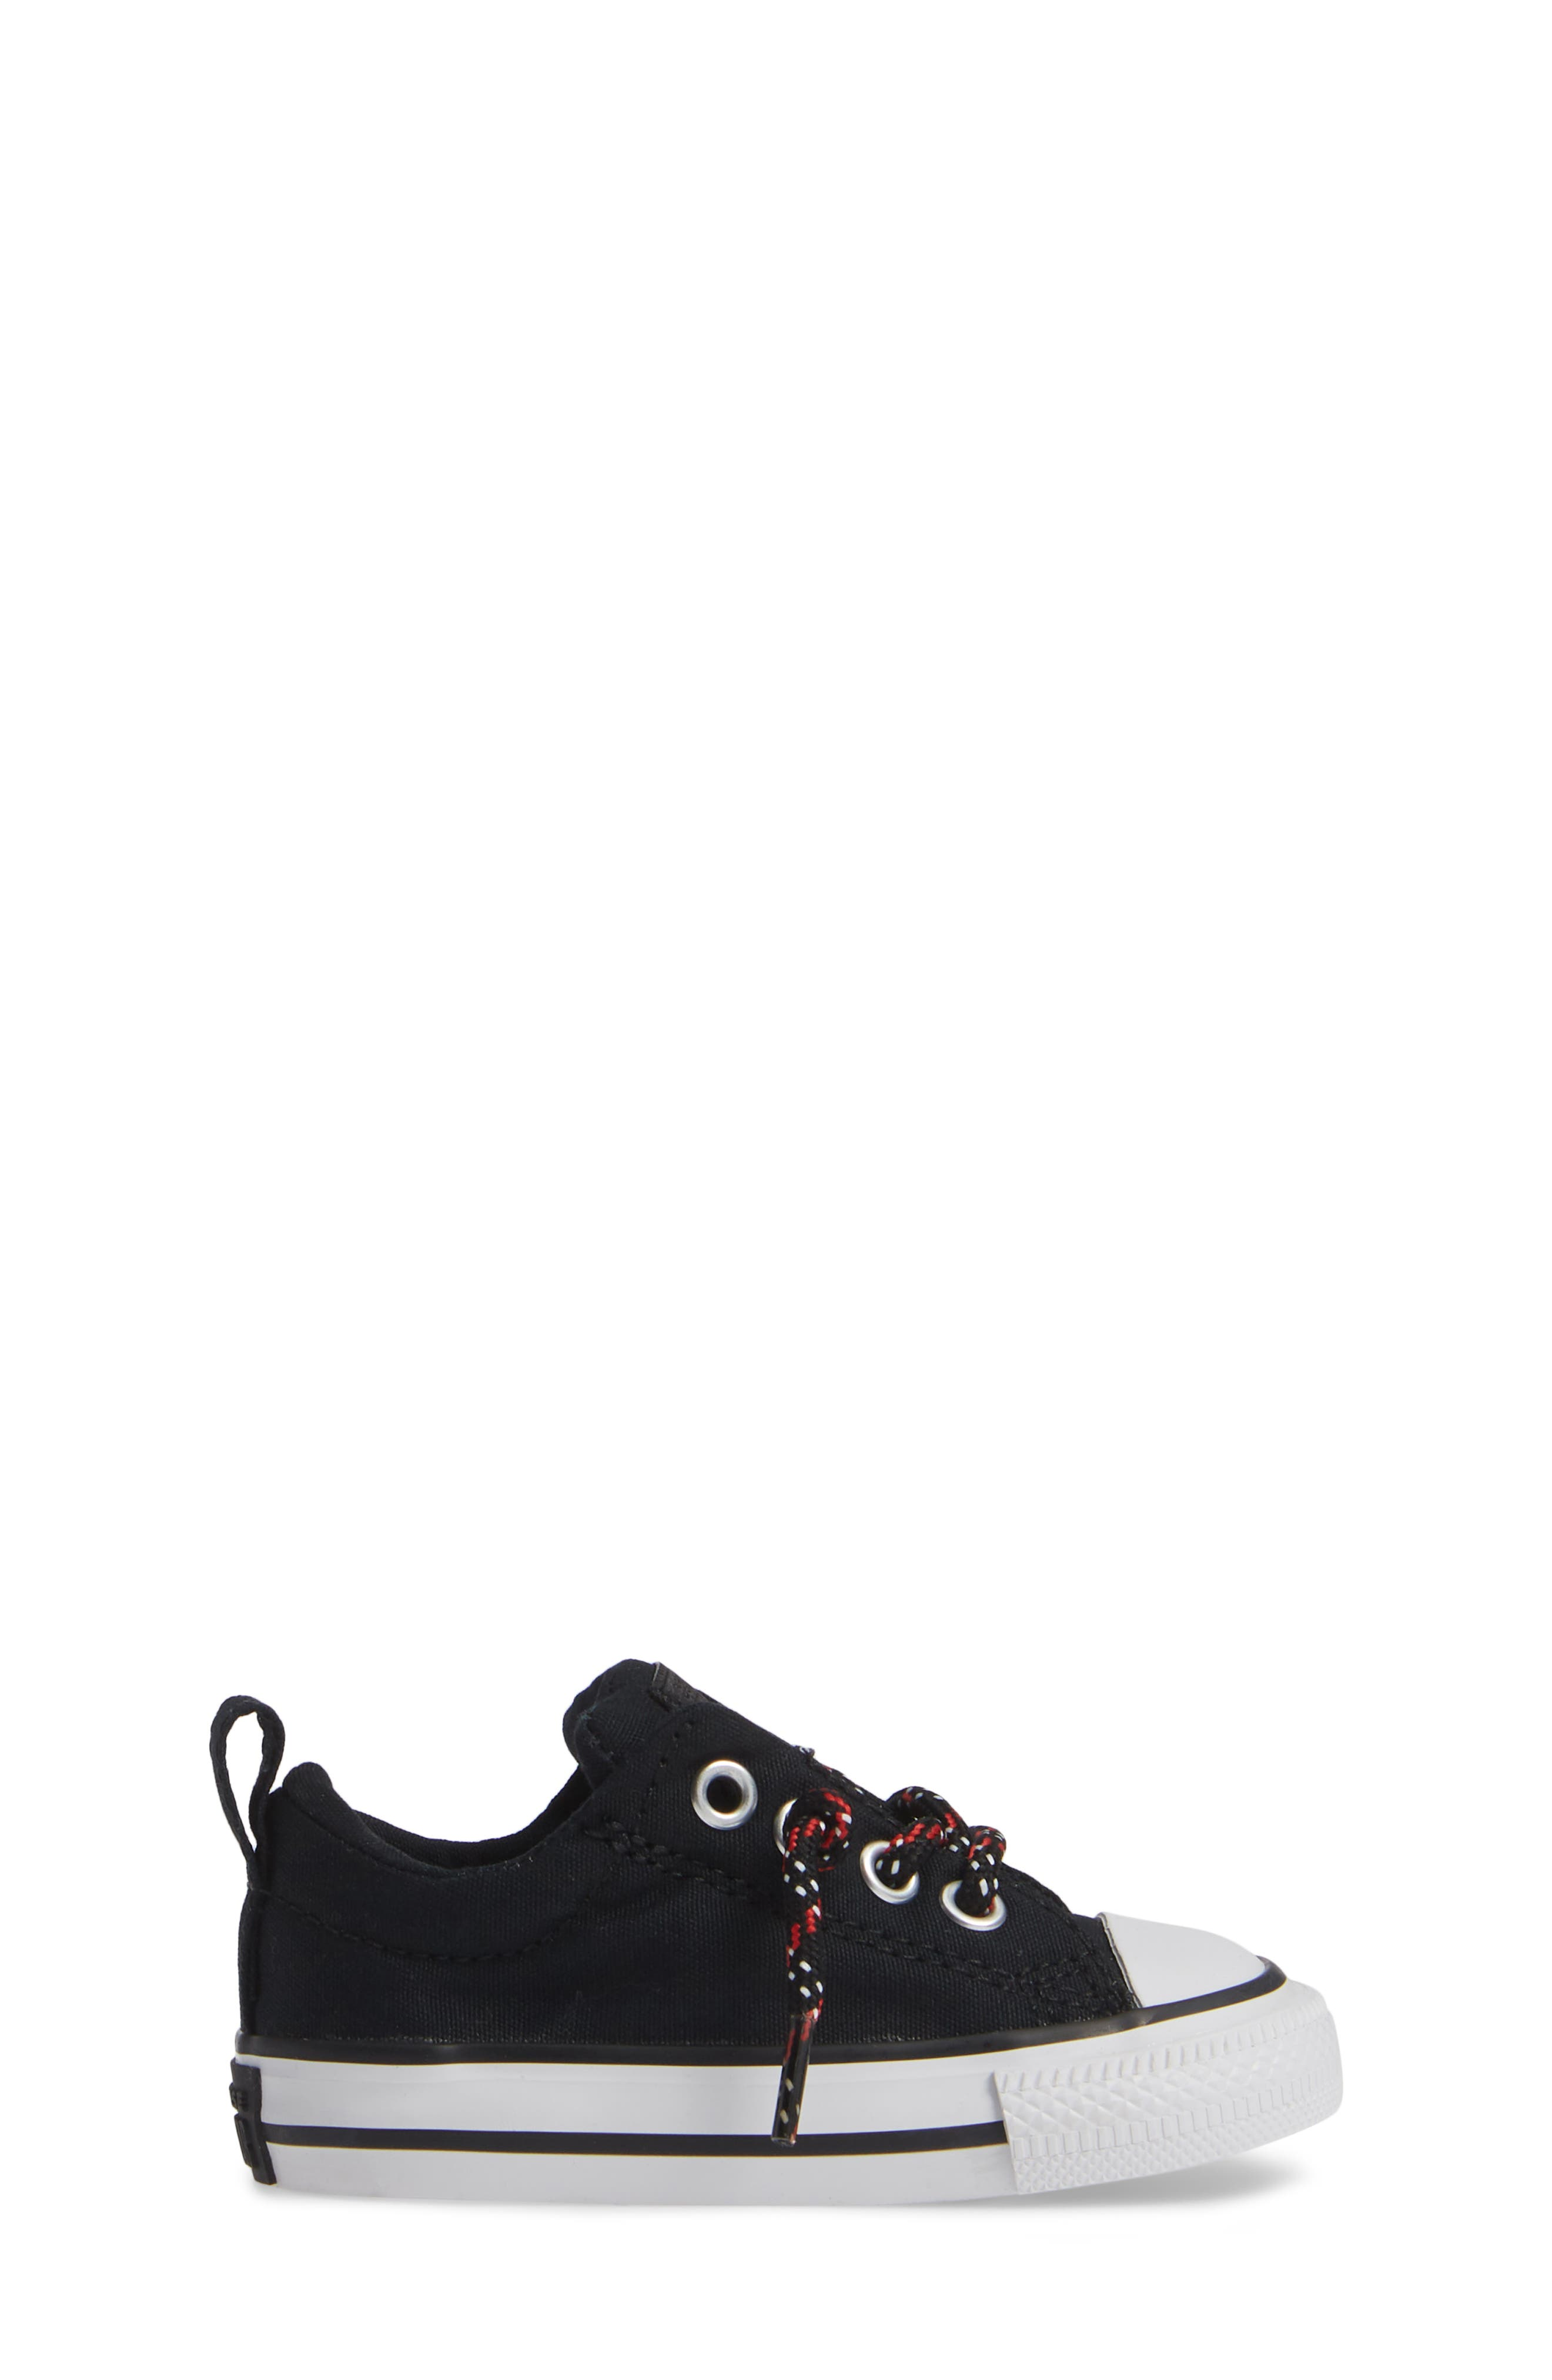 All Star<sup>®</sup> Graphite & Glitter Low Top Sneaker,                             Alternate thumbnail 3, color,                             002